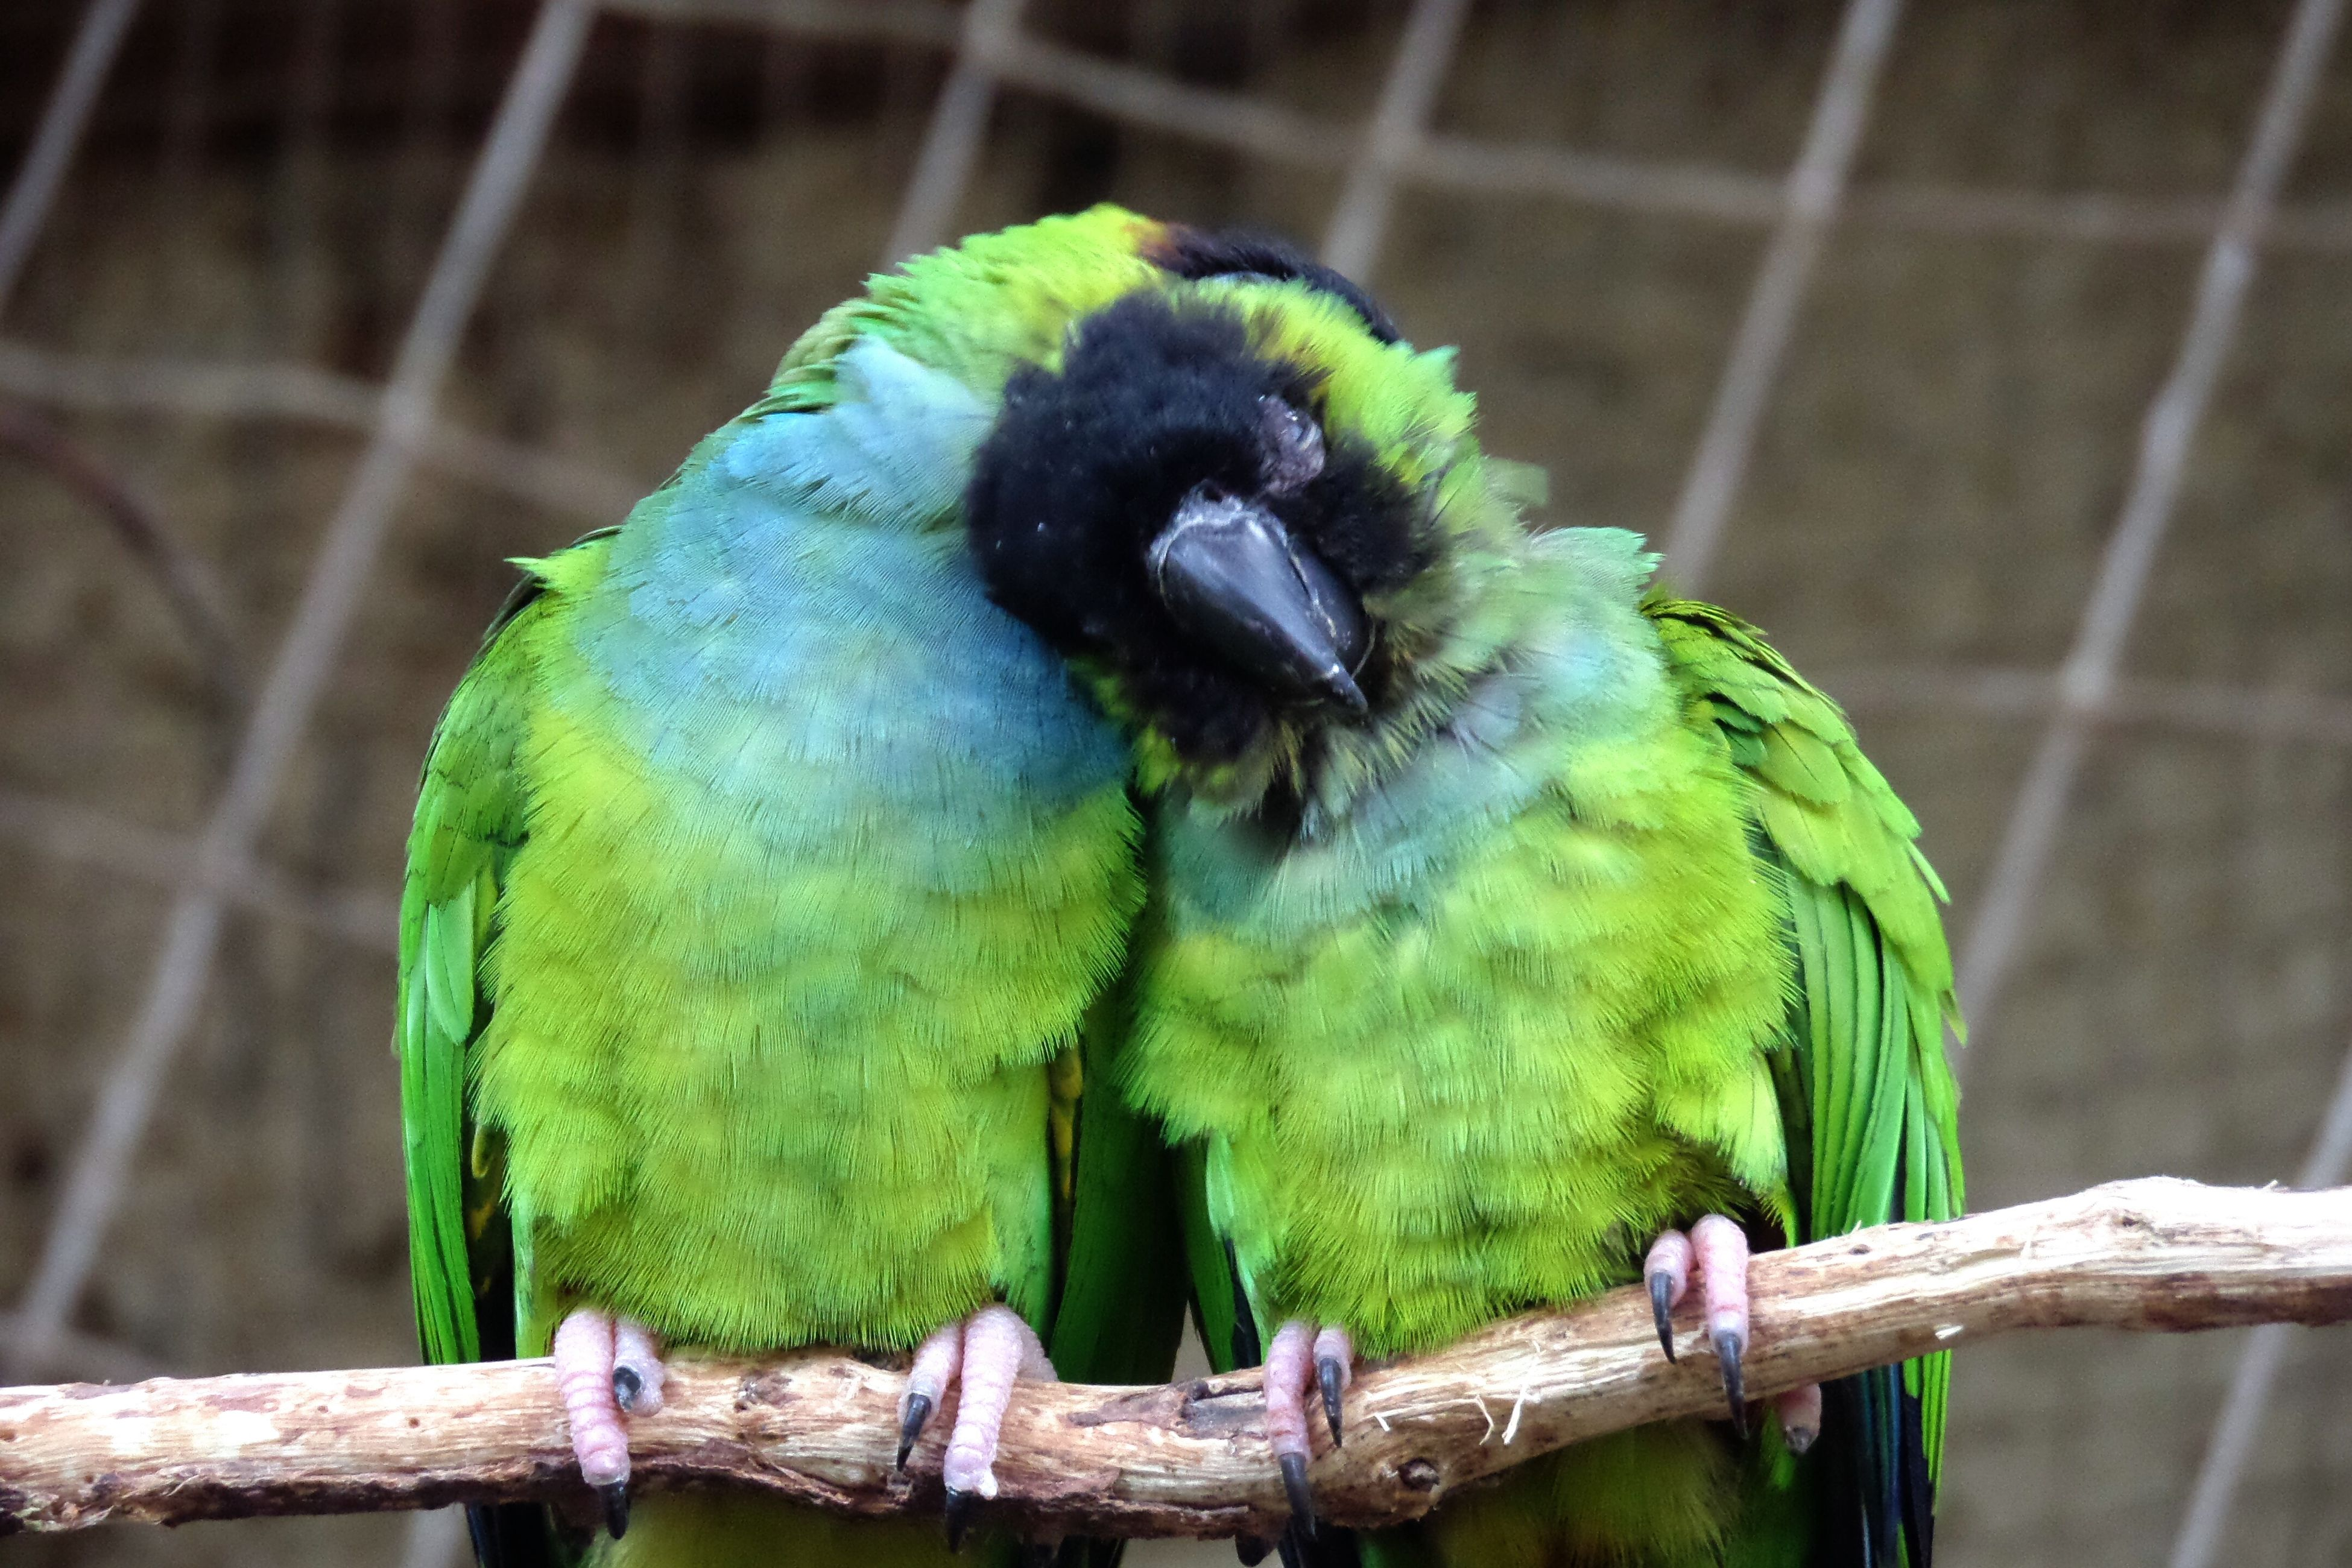 bird, animal themes, perching, one animal, focus on foreground, animals in the wild, close-up, wood - material, wildlife, green color, nature, branch, parrot, outdoors, fence, day, no people, tree, beauty in nature, railing